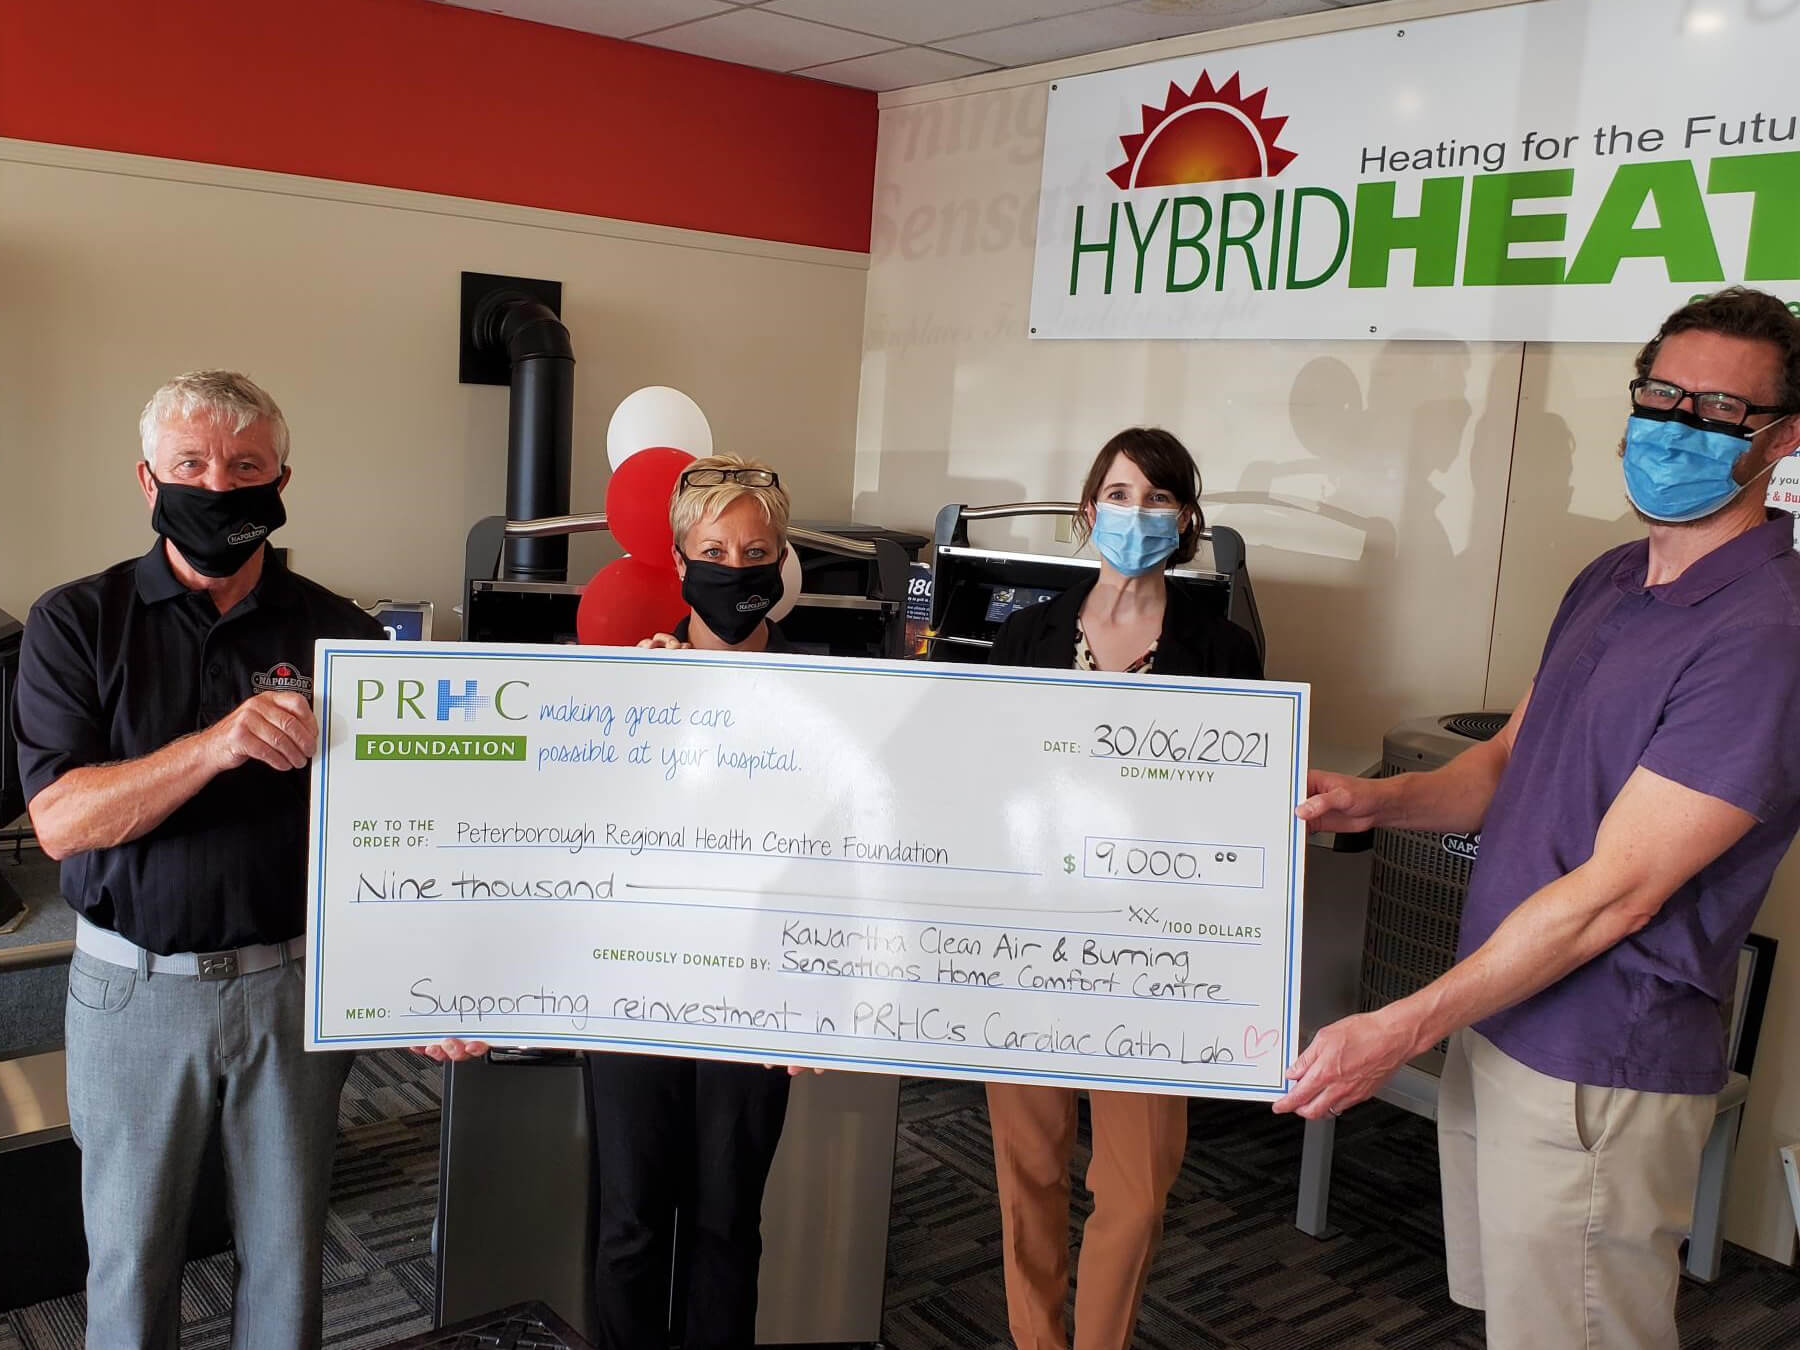 Four people wearing masks hold an oversized donation cheque for $9,000